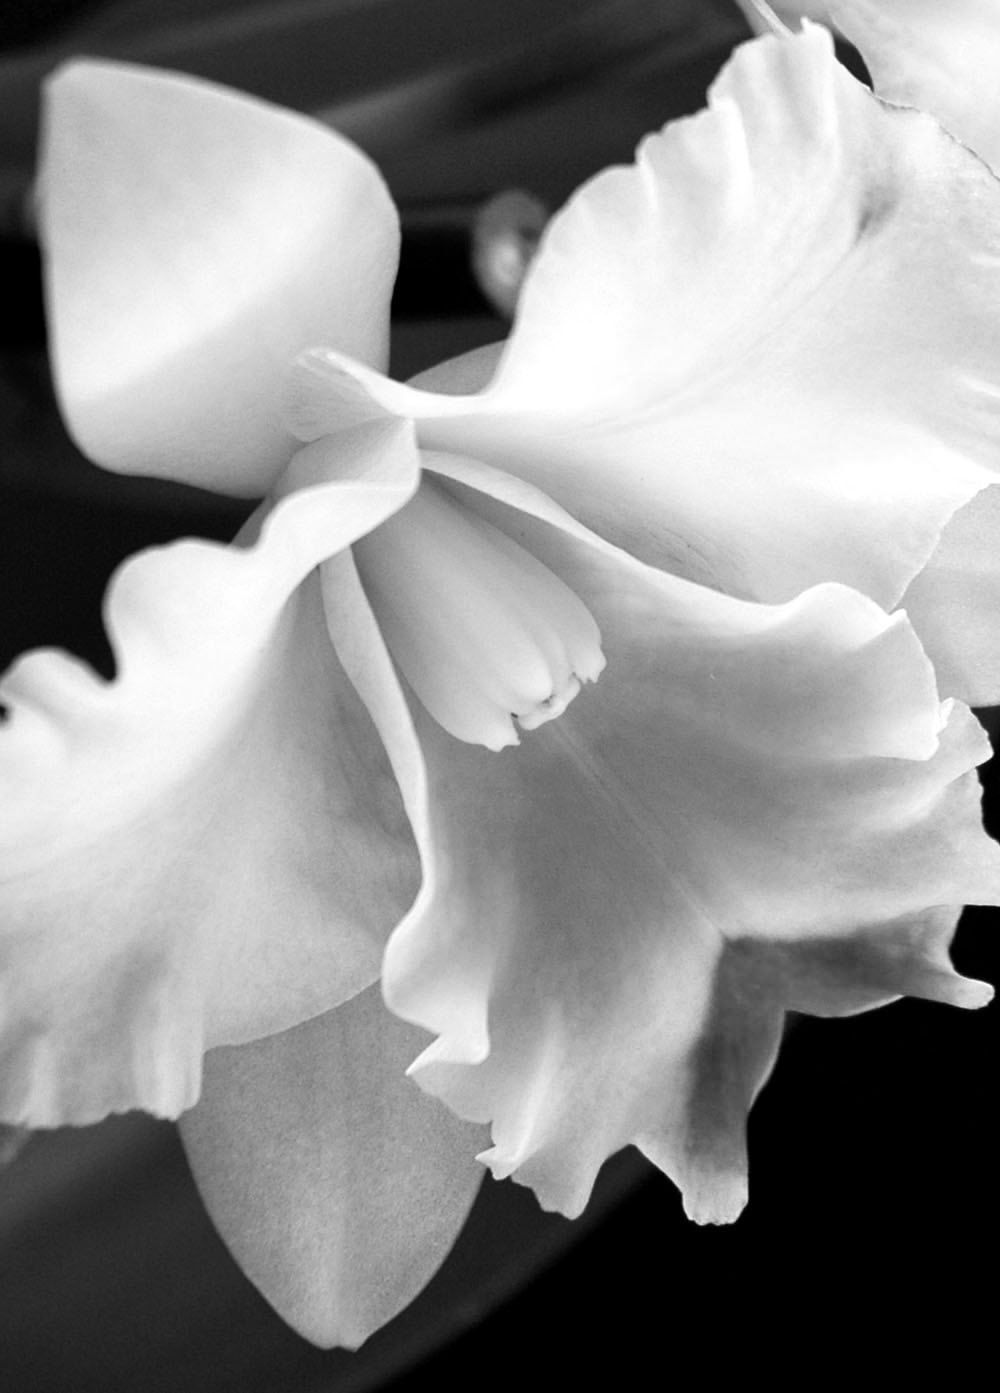 Black And White Orchid Cattleya Orchid Black And White Flower Macro Flower Fine Art Photography Wall Art Cattleya Orchid Macro Flower Macro Photography Flowers